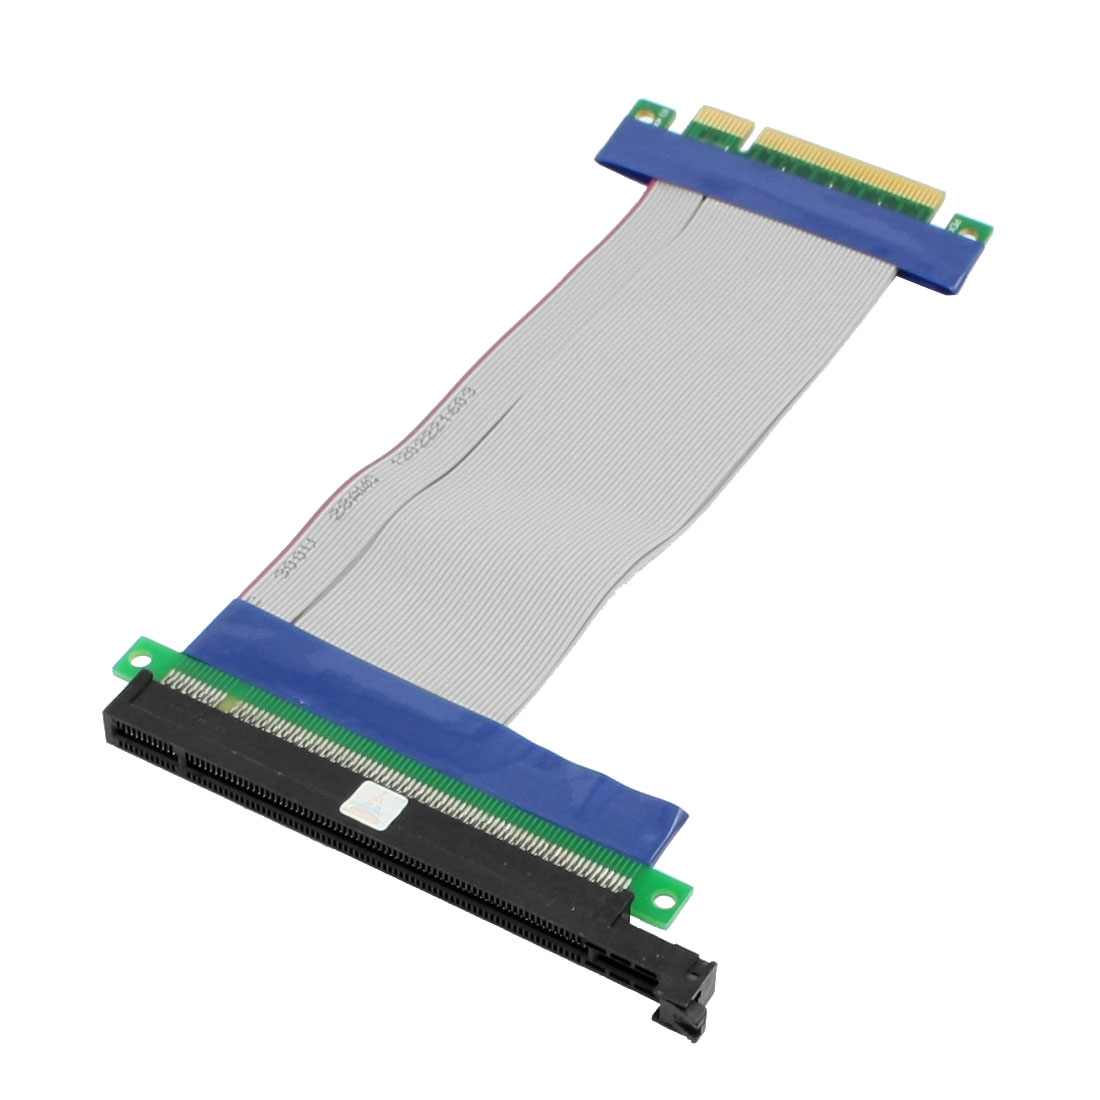 PCI-Express PCI-E 16X/8X Riser Card Extension Ribbon Cable for Computer PC